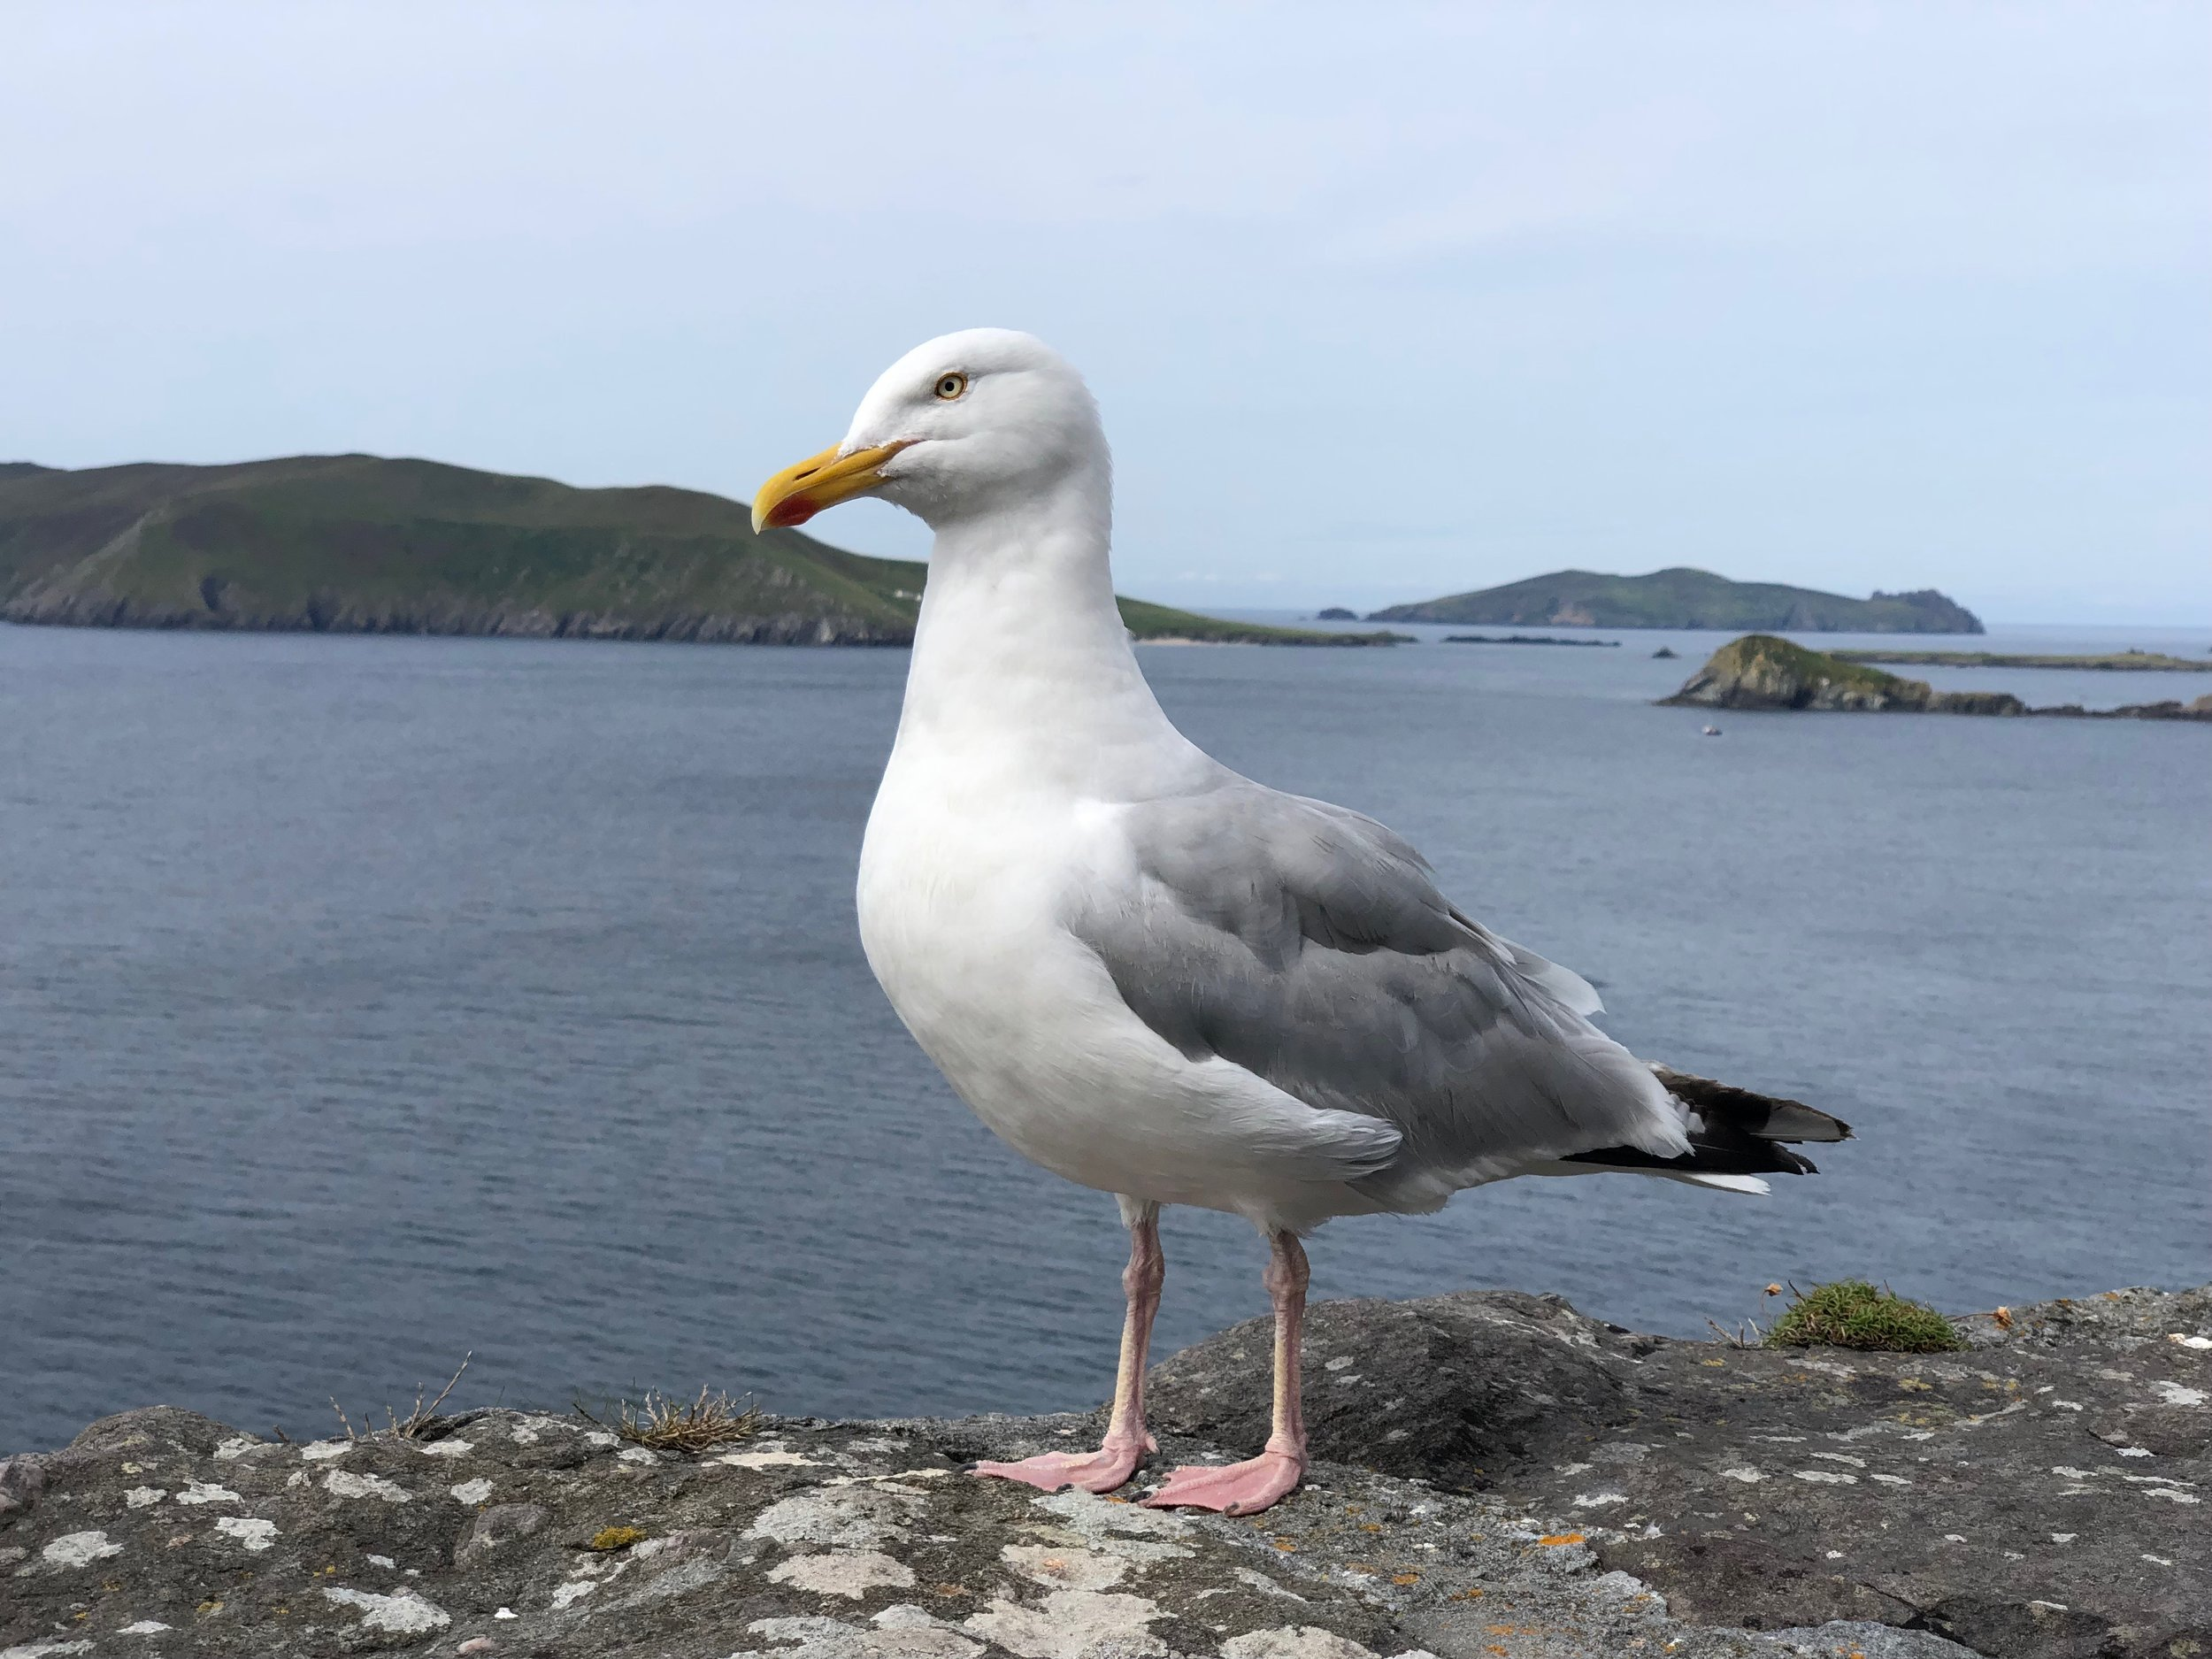 This gull looks a lot like the one that stole my empanada in Helsinki.